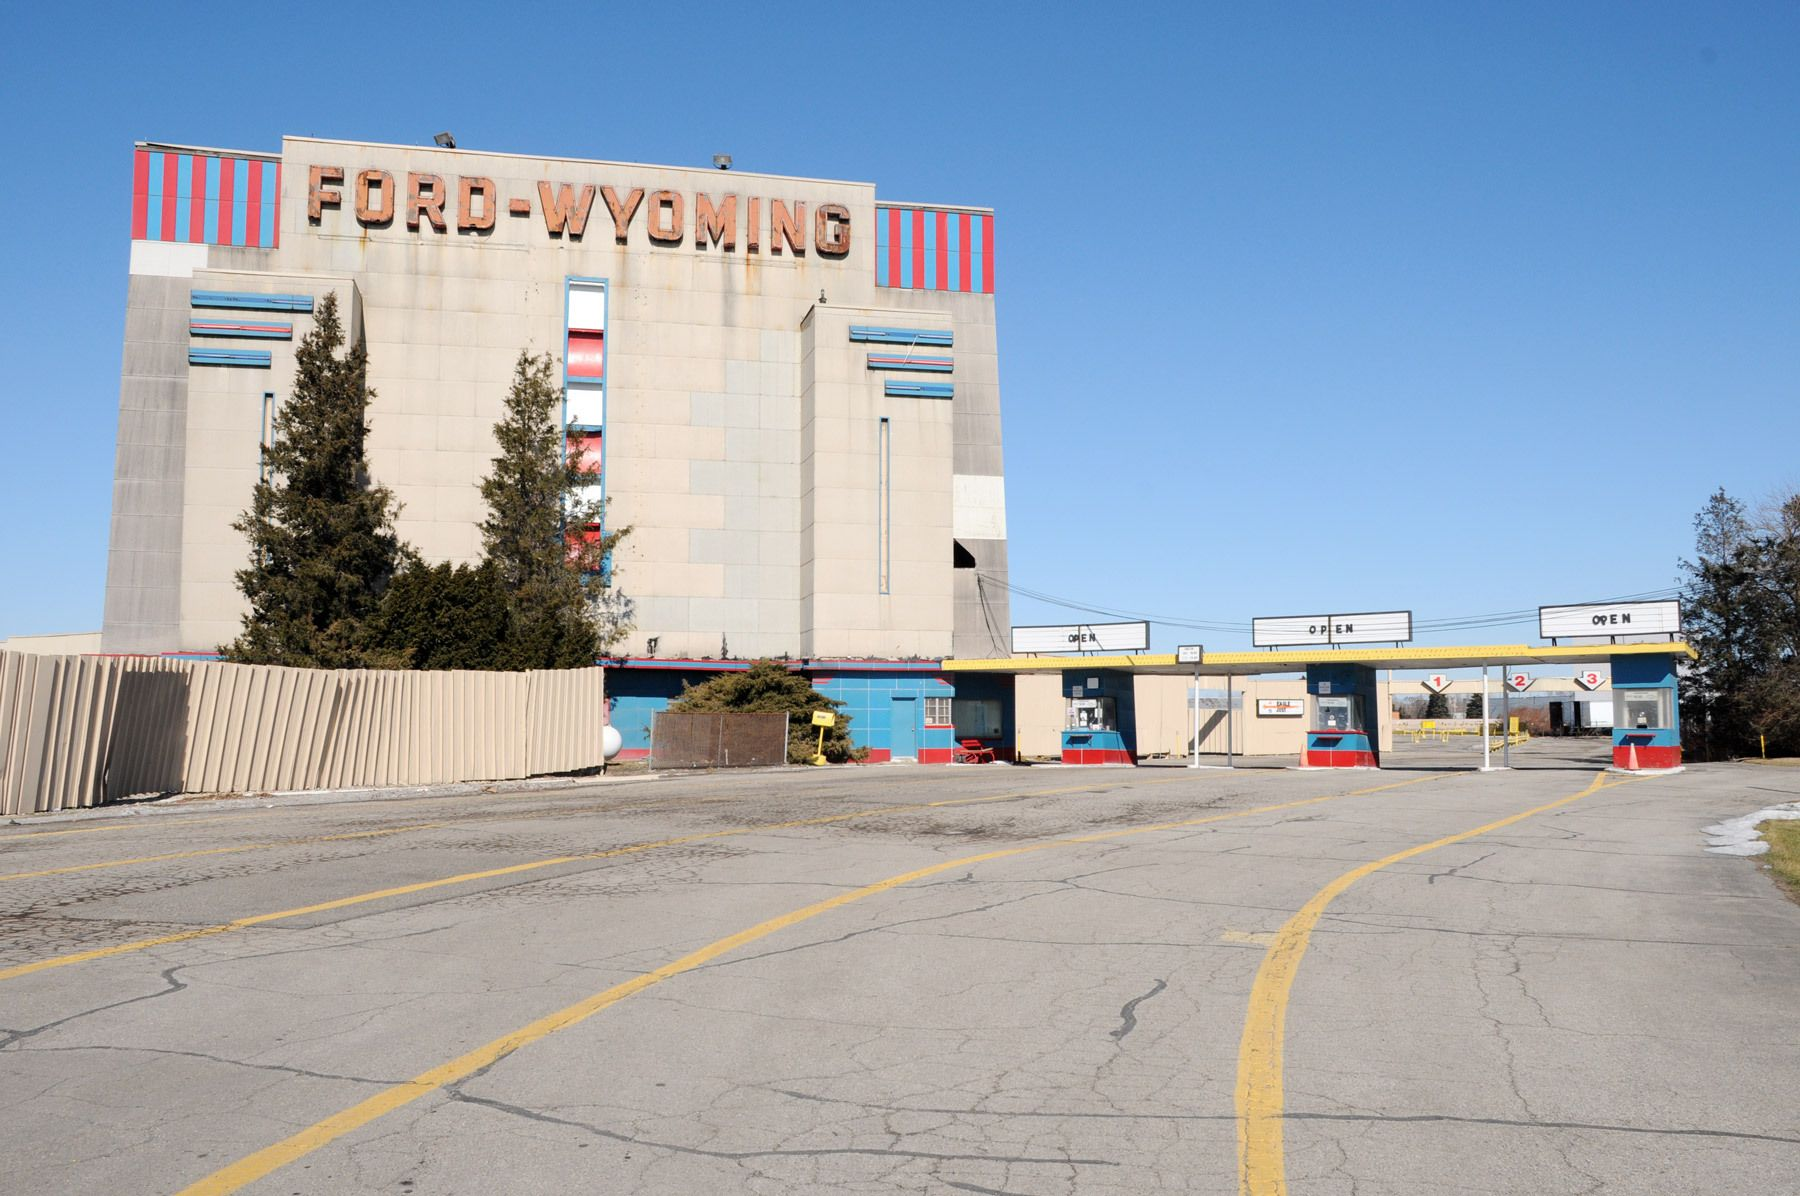 1ford_wyoming_drive_in_movie_theatre_dearborn_michigan.jpg